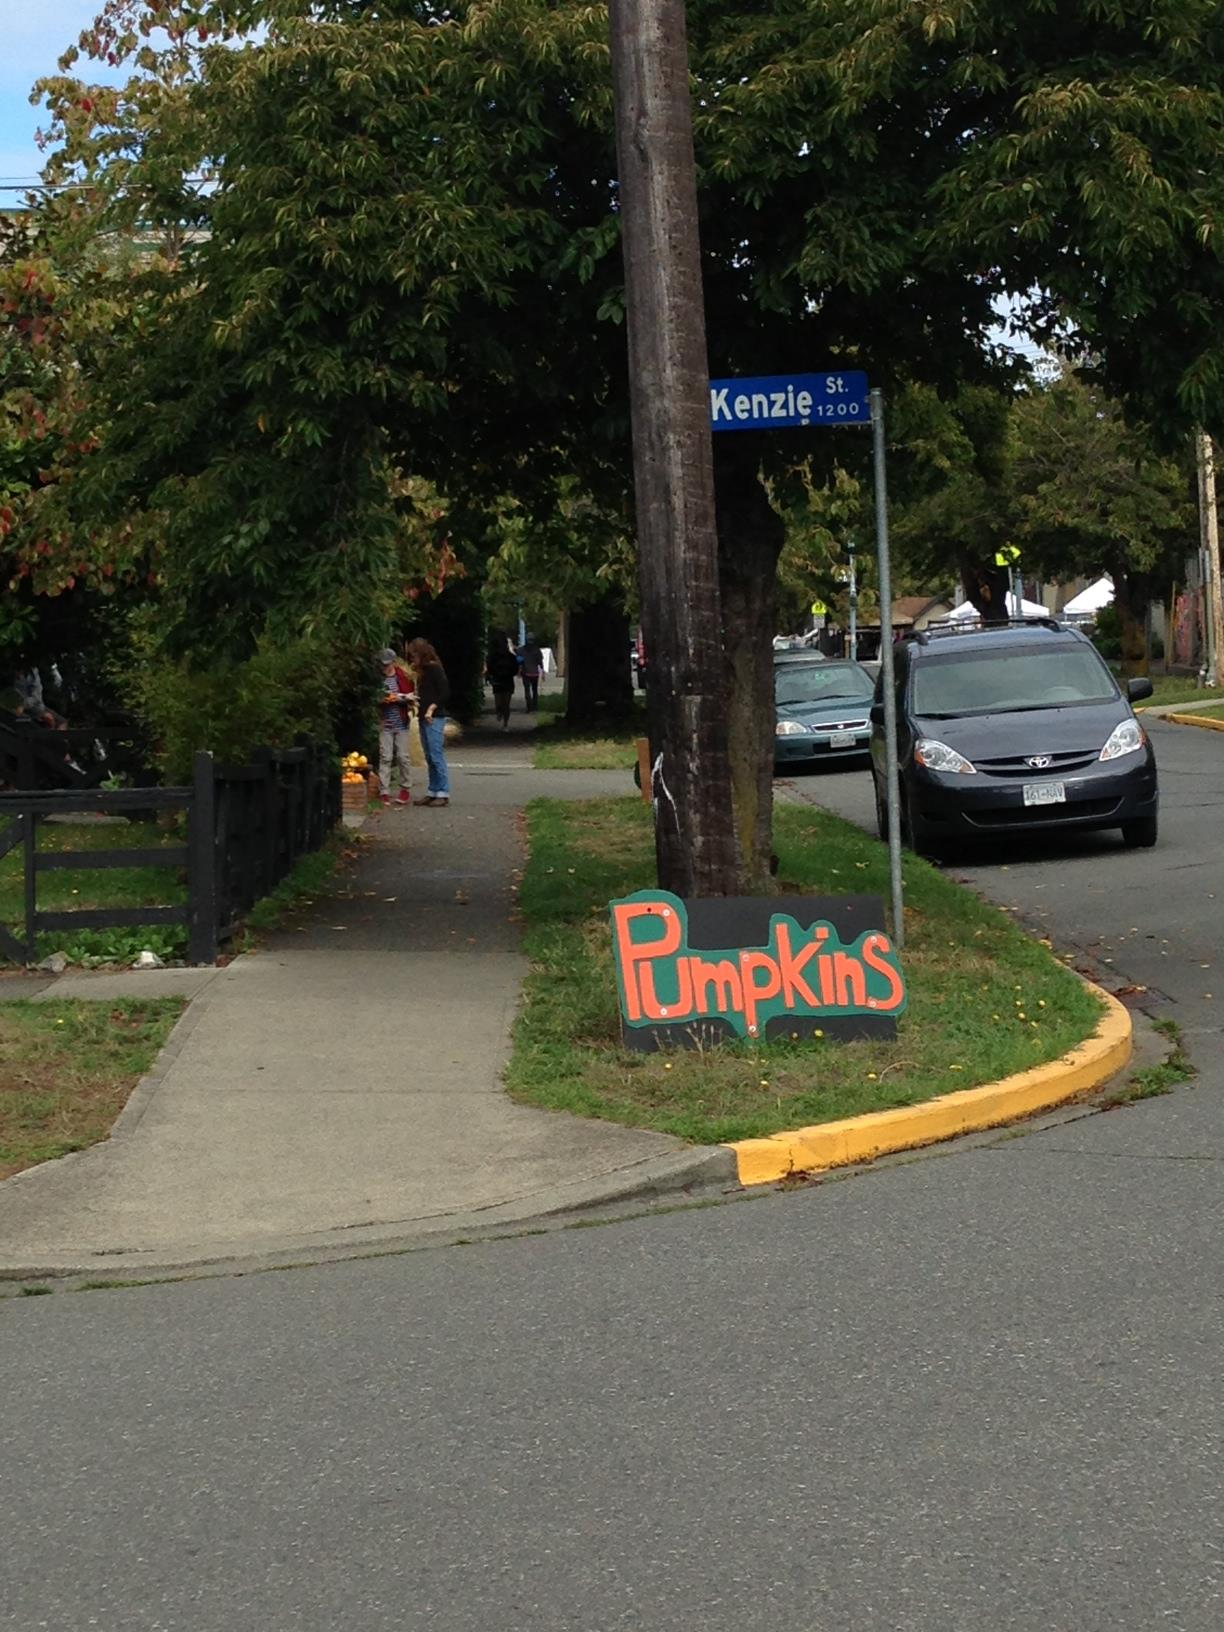 If you look close, you can see a few ladies checking out the pumpkins halfway up the block :)